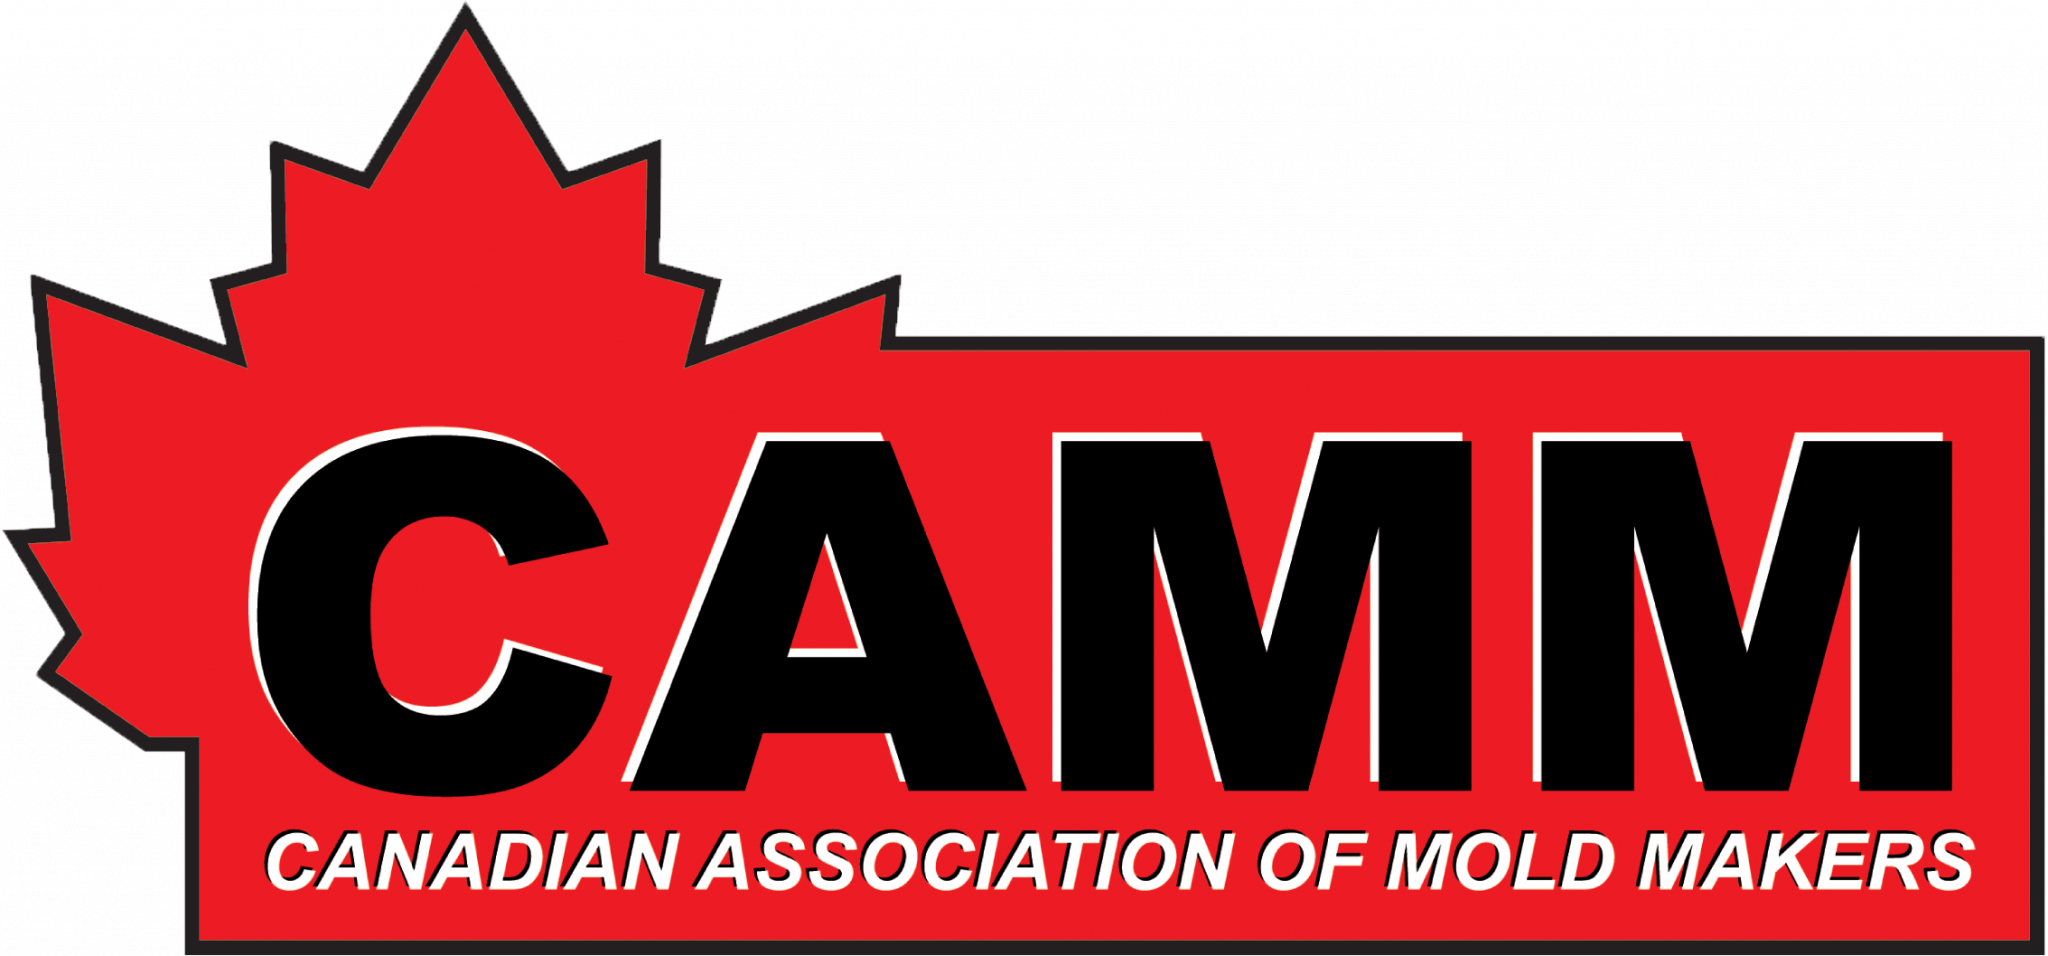 Canadian Association of Mold Makers